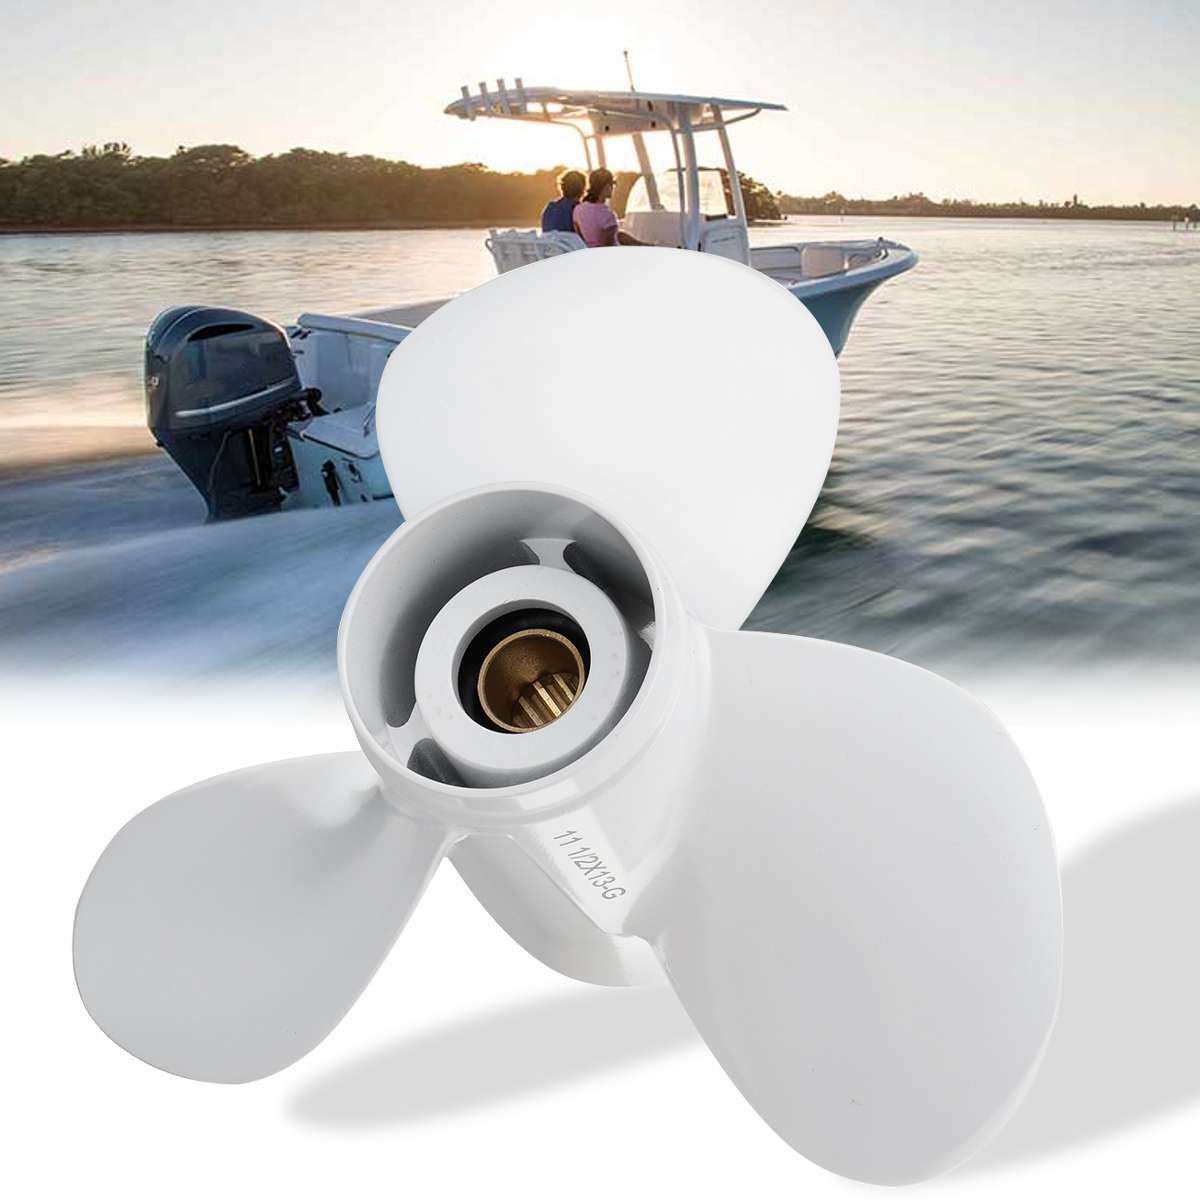 Boat Outboard Propeller 663-45974-02-98 For Yamaha 25-60HP  11 1/2 X 13 Aluminum 13 Spline Tooths R Rotation 3 Blades WhiteBoat Outboard Propeller 663-45974-02-98 For Yamaha 25-60HP  11 1/2 X 13 Aluminum 13 Spline Tooths R Rotation 3 Blades White